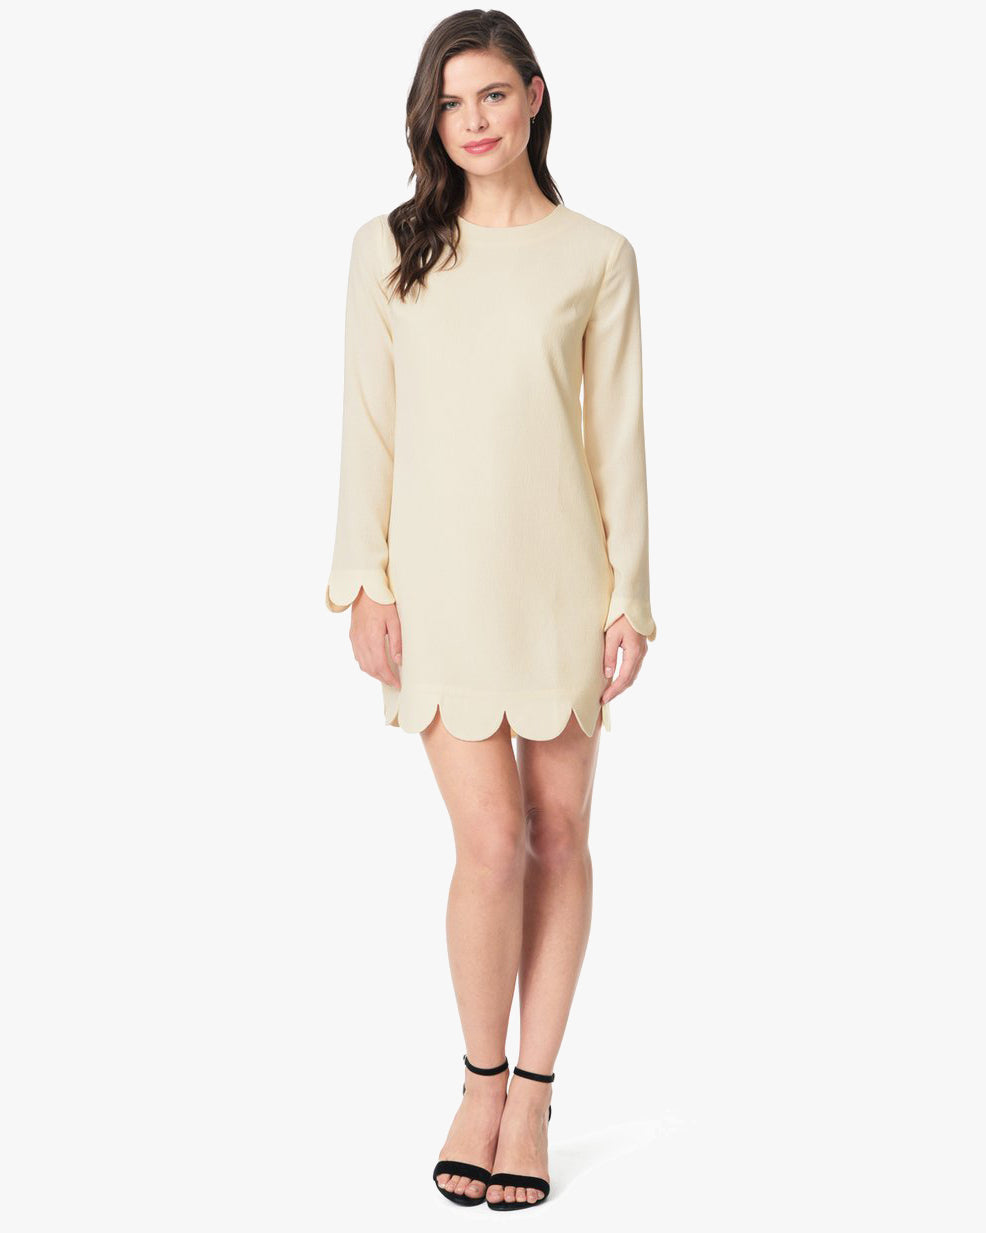 SCALLOPED HEM DRESS